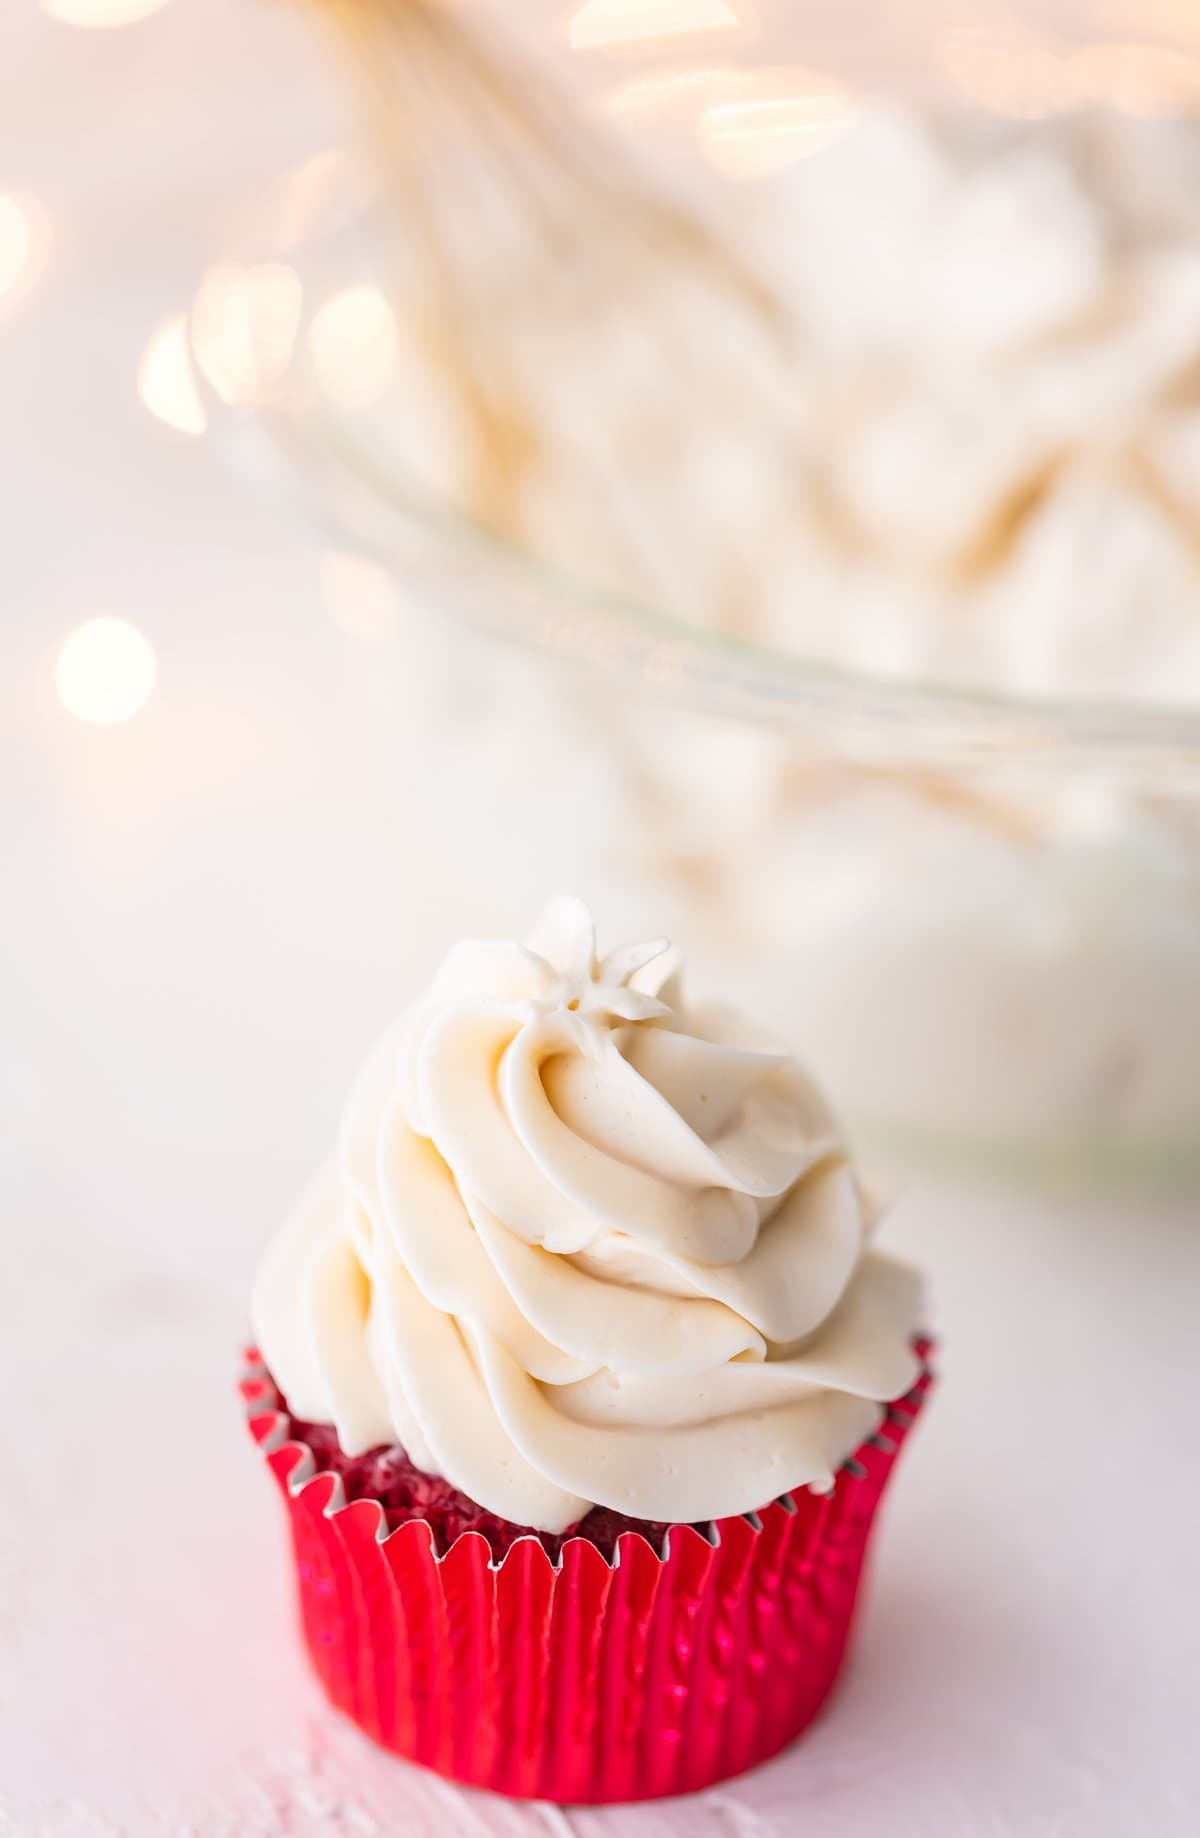 This BEST ICING EVER is the ultimate EASY icing for every cupcake, cake, and baked good! YOU HAVE TO TRY THIS...trust me!